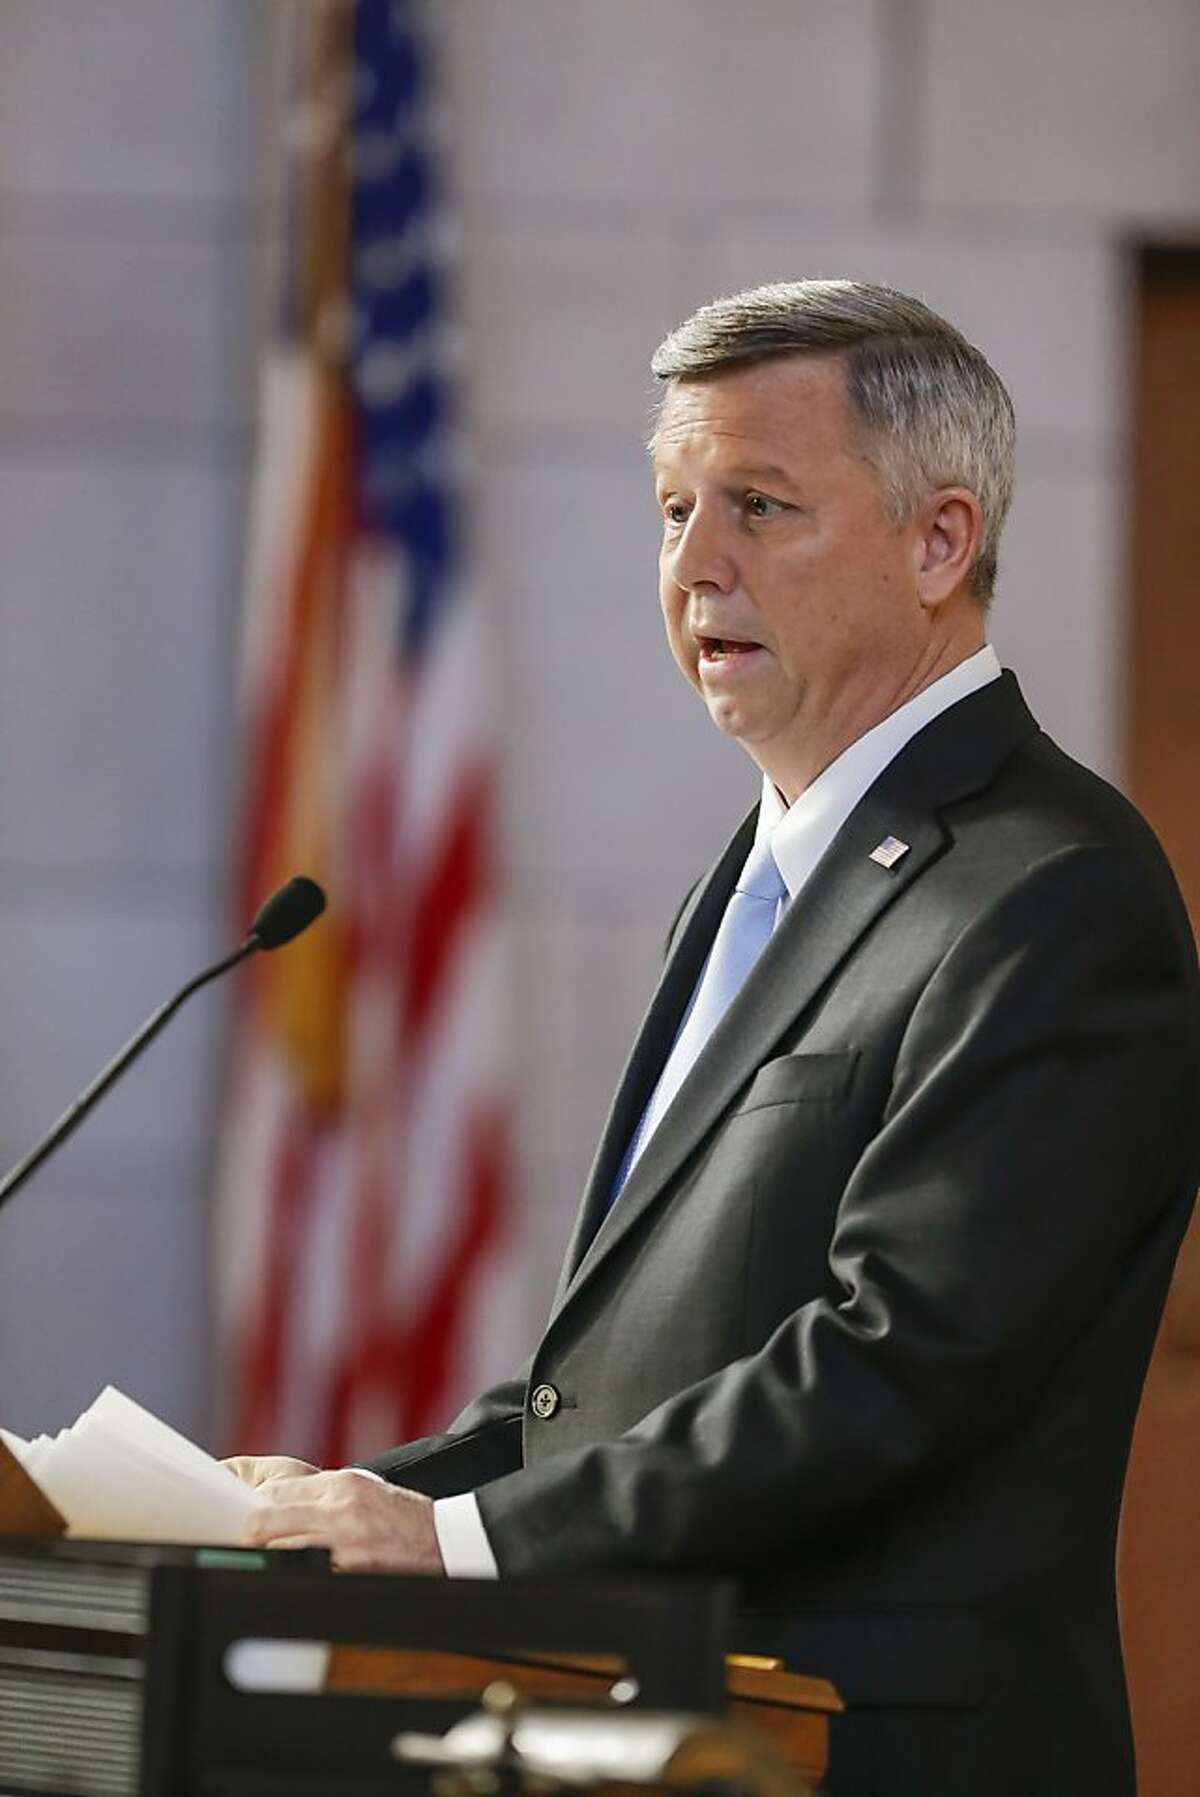 Nebraska Gov. Dave Heineman delivers the annual State of the State address to lawmakers in Lincoln, Neb., Tuesday, Jan. 15, 2013. Gov. Heineman is pushing for tax reform. (AP Photo/Nati Harnik)